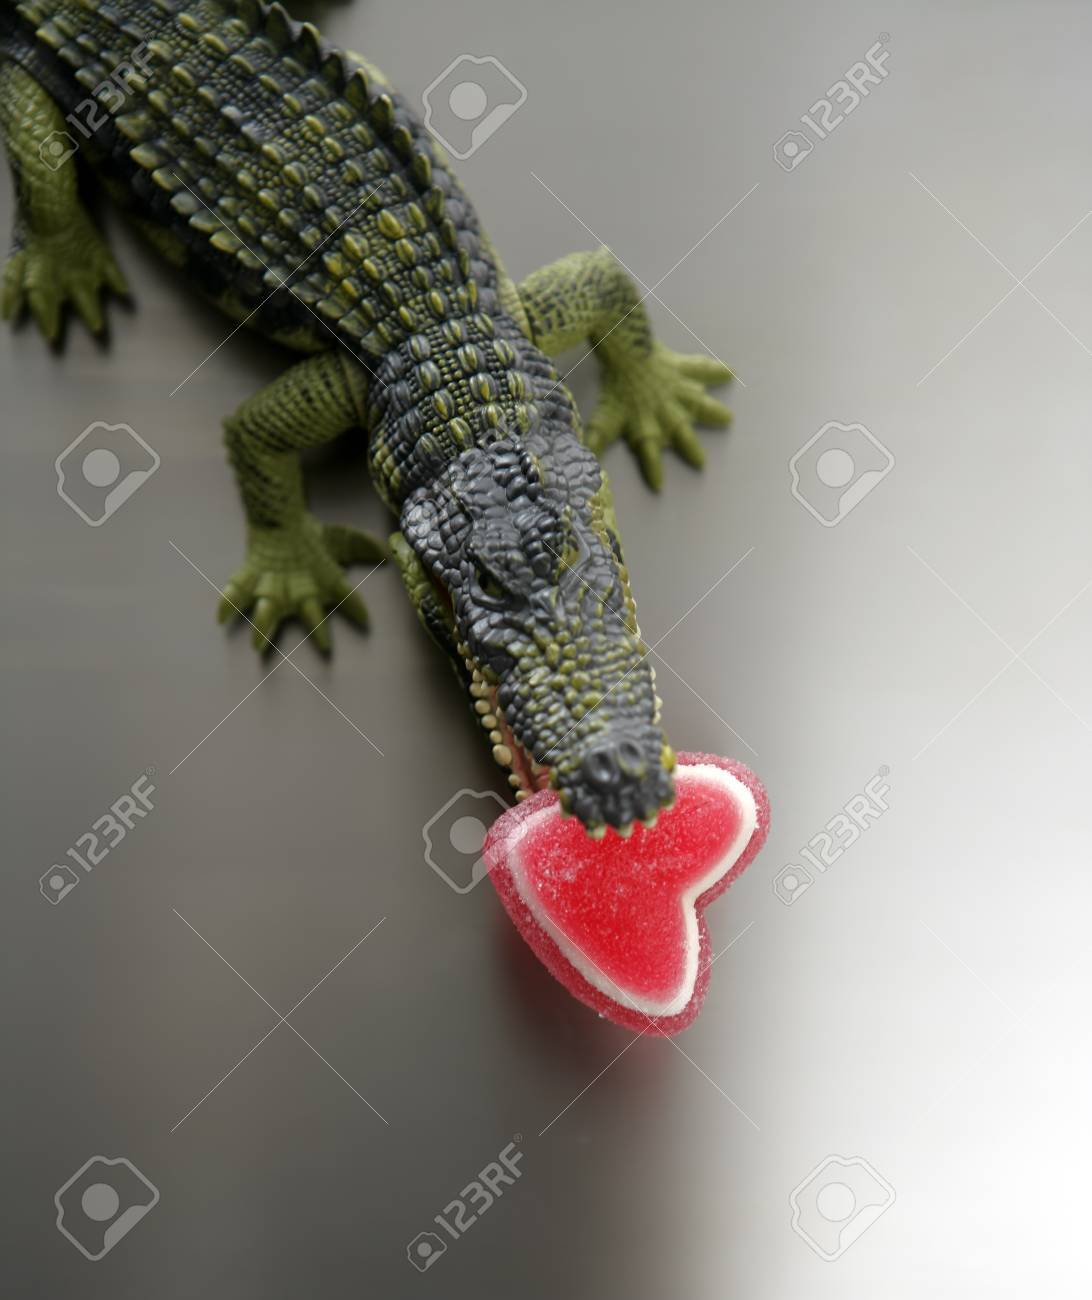 Toy plastic cocodrile, aligator with candy Valentine red heart in its sharped theet jaws metaphor Stock Photo - 4061172